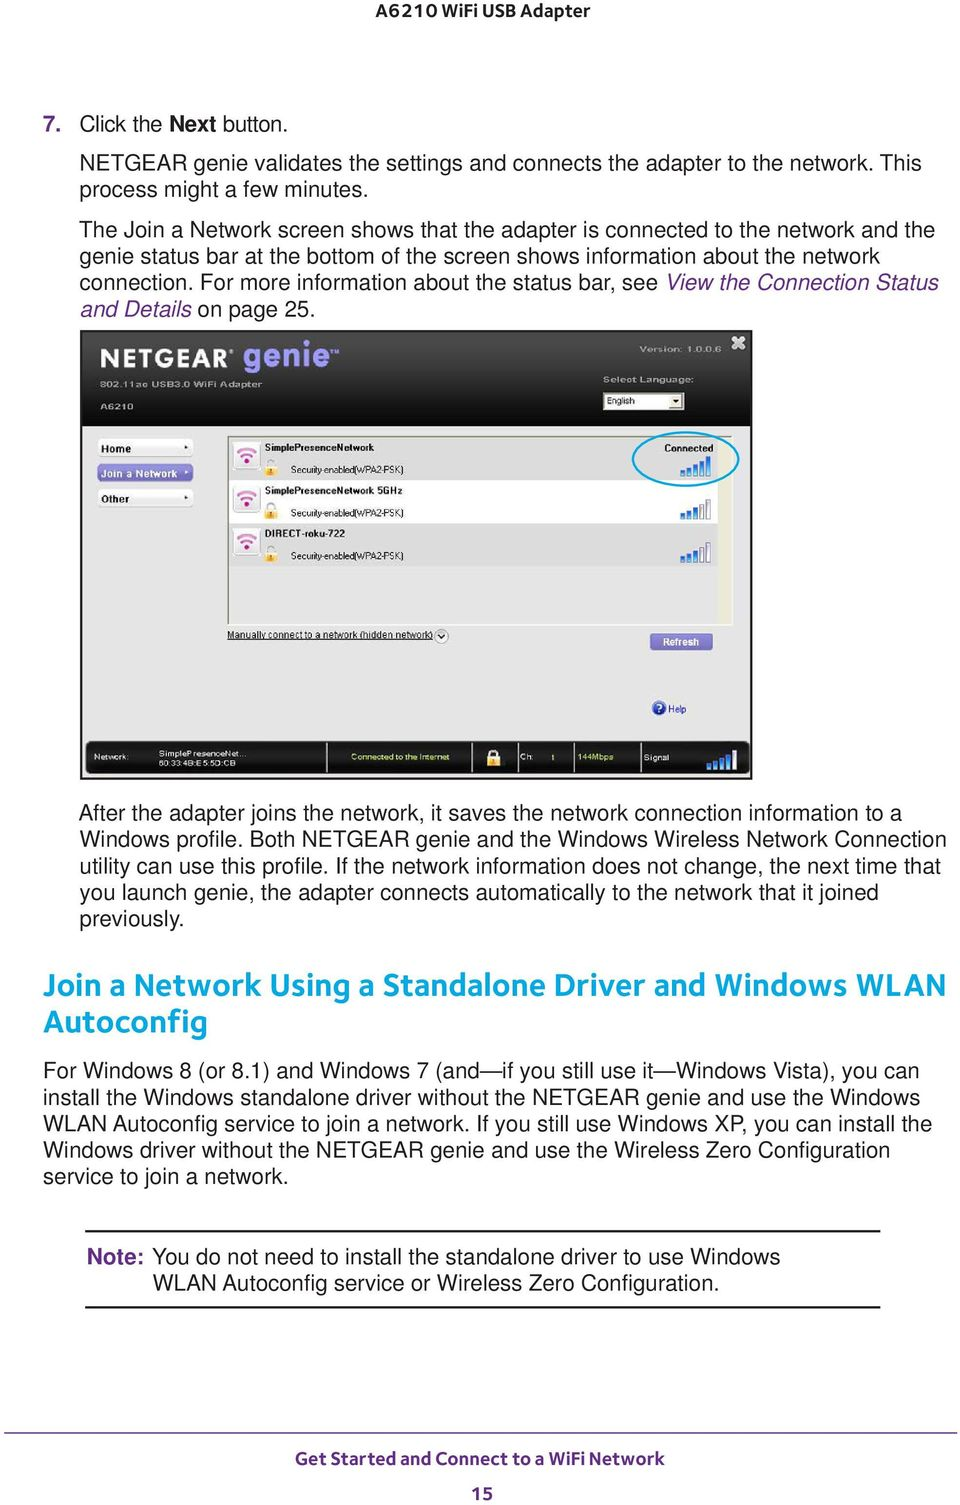 For more information about the status bar, see View the Connection Status and Details on page 25. After the adapter joins the network, it saves the network connection information to a Windows profile.